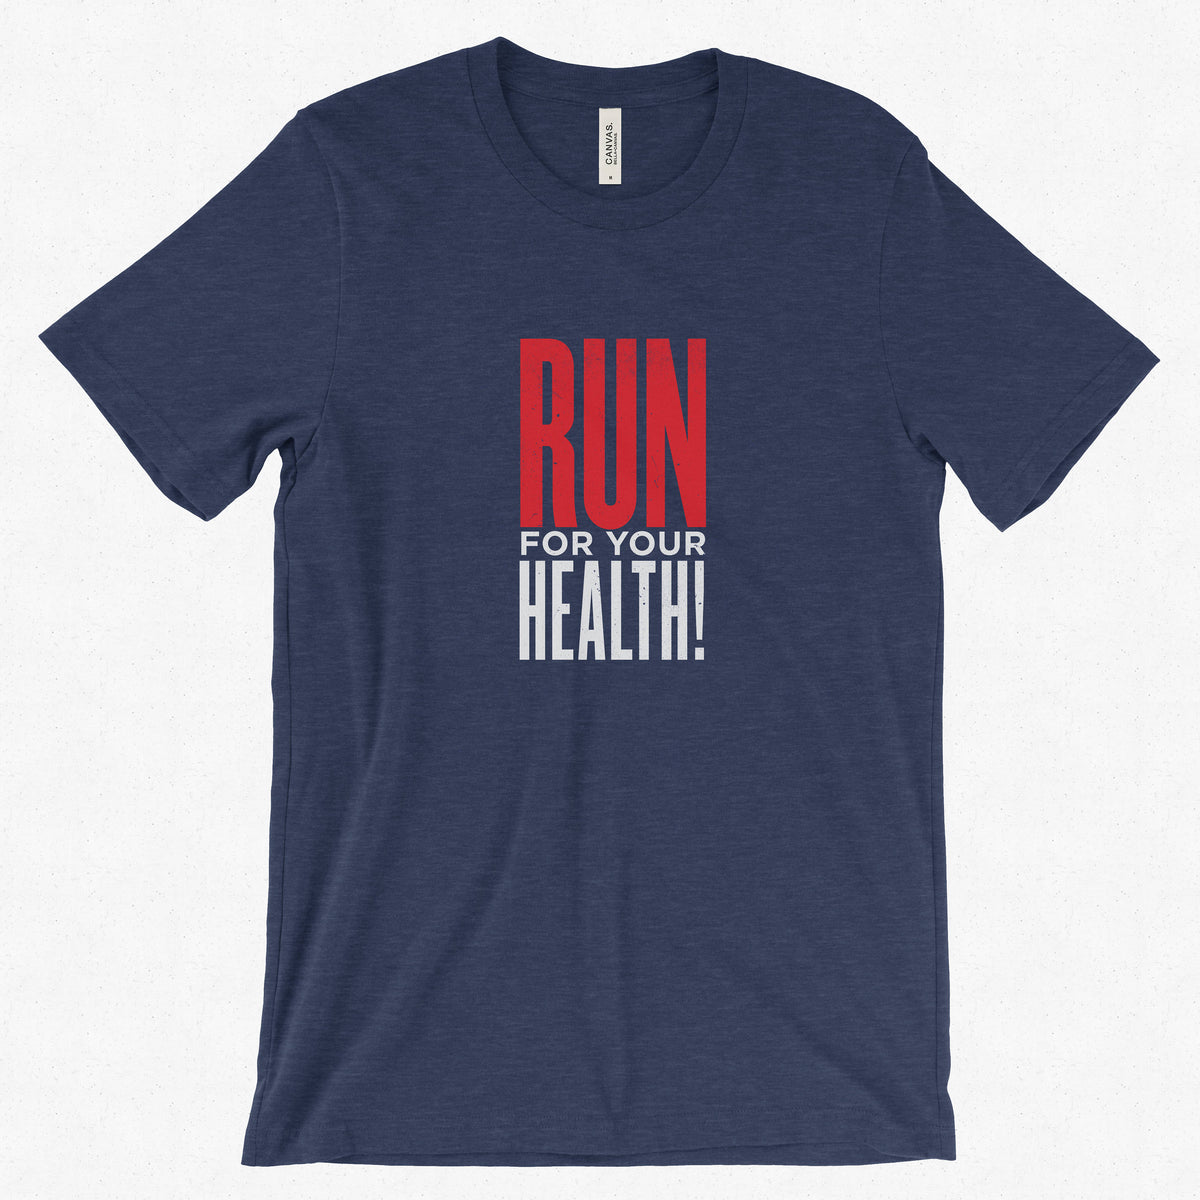 Run For Your Health!